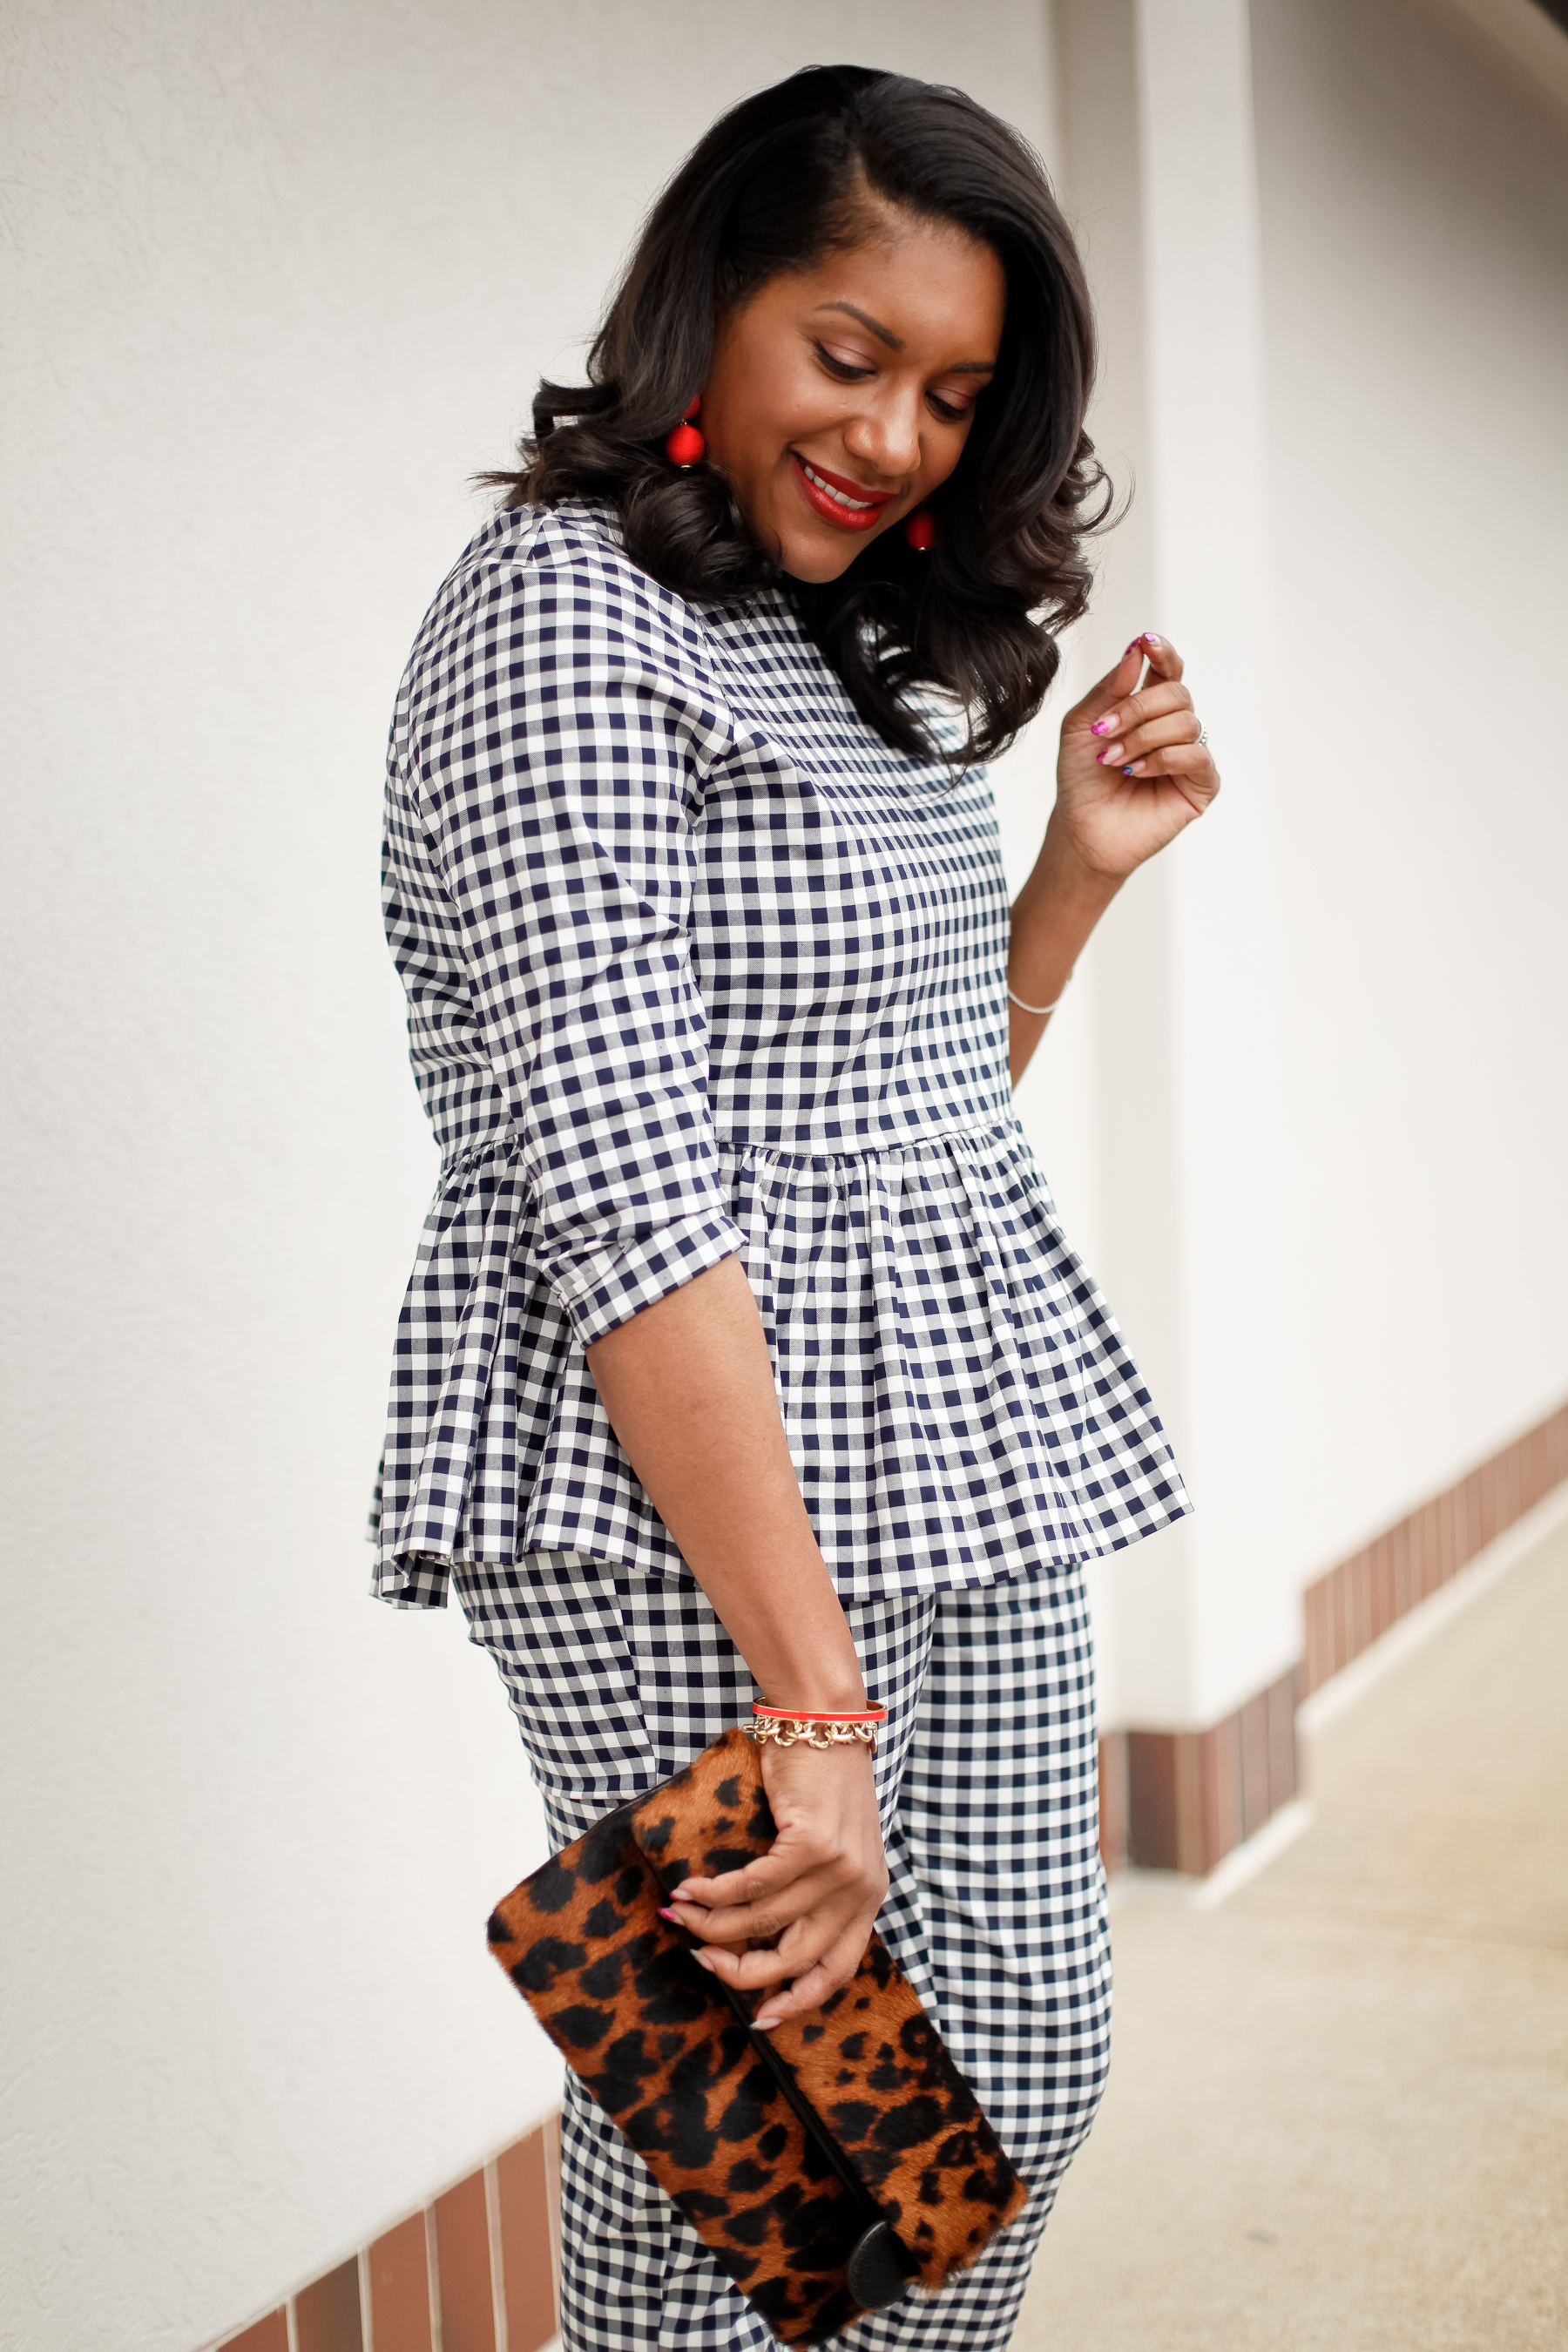 Gingham-Outfit-Red-Shoes-4